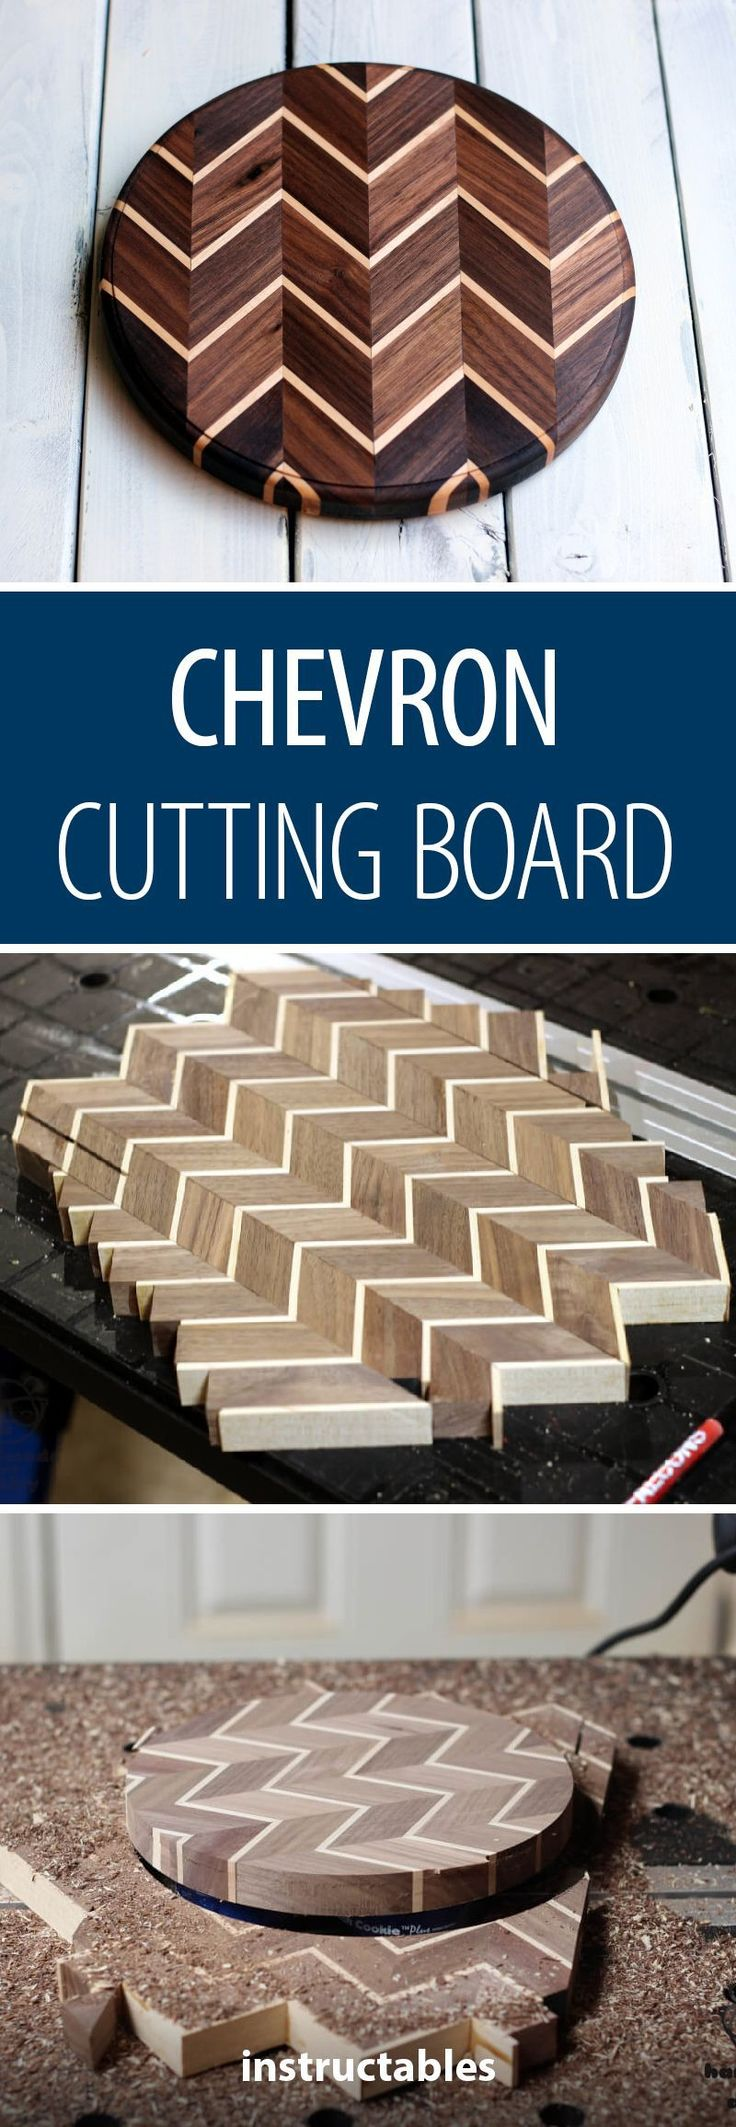 Chevron Cutting Board Steve Green